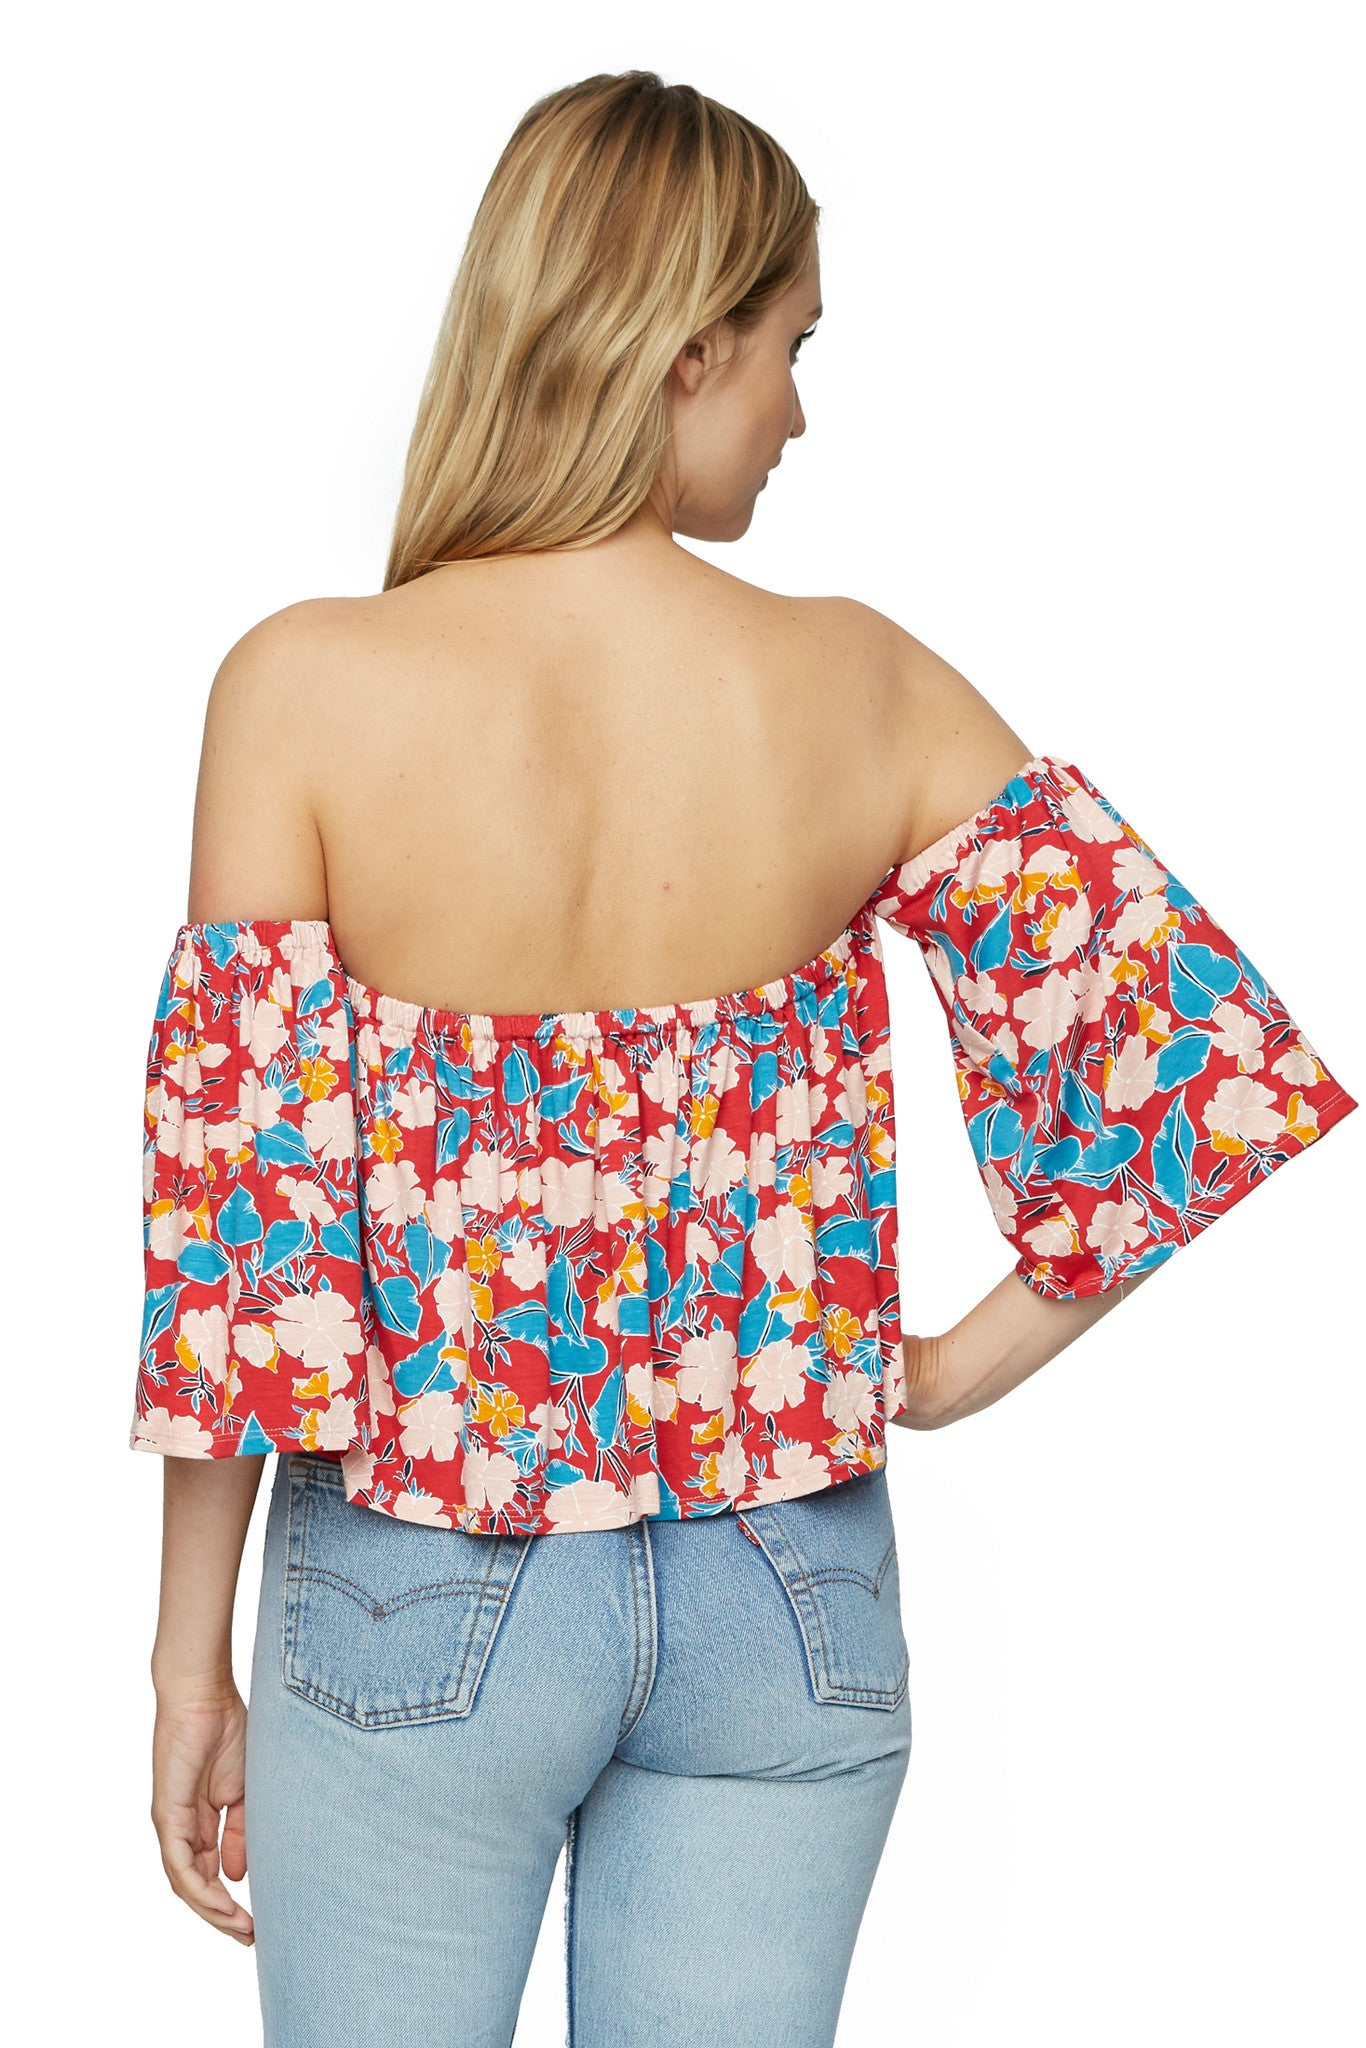 Esmeralda Top Print - Tropic